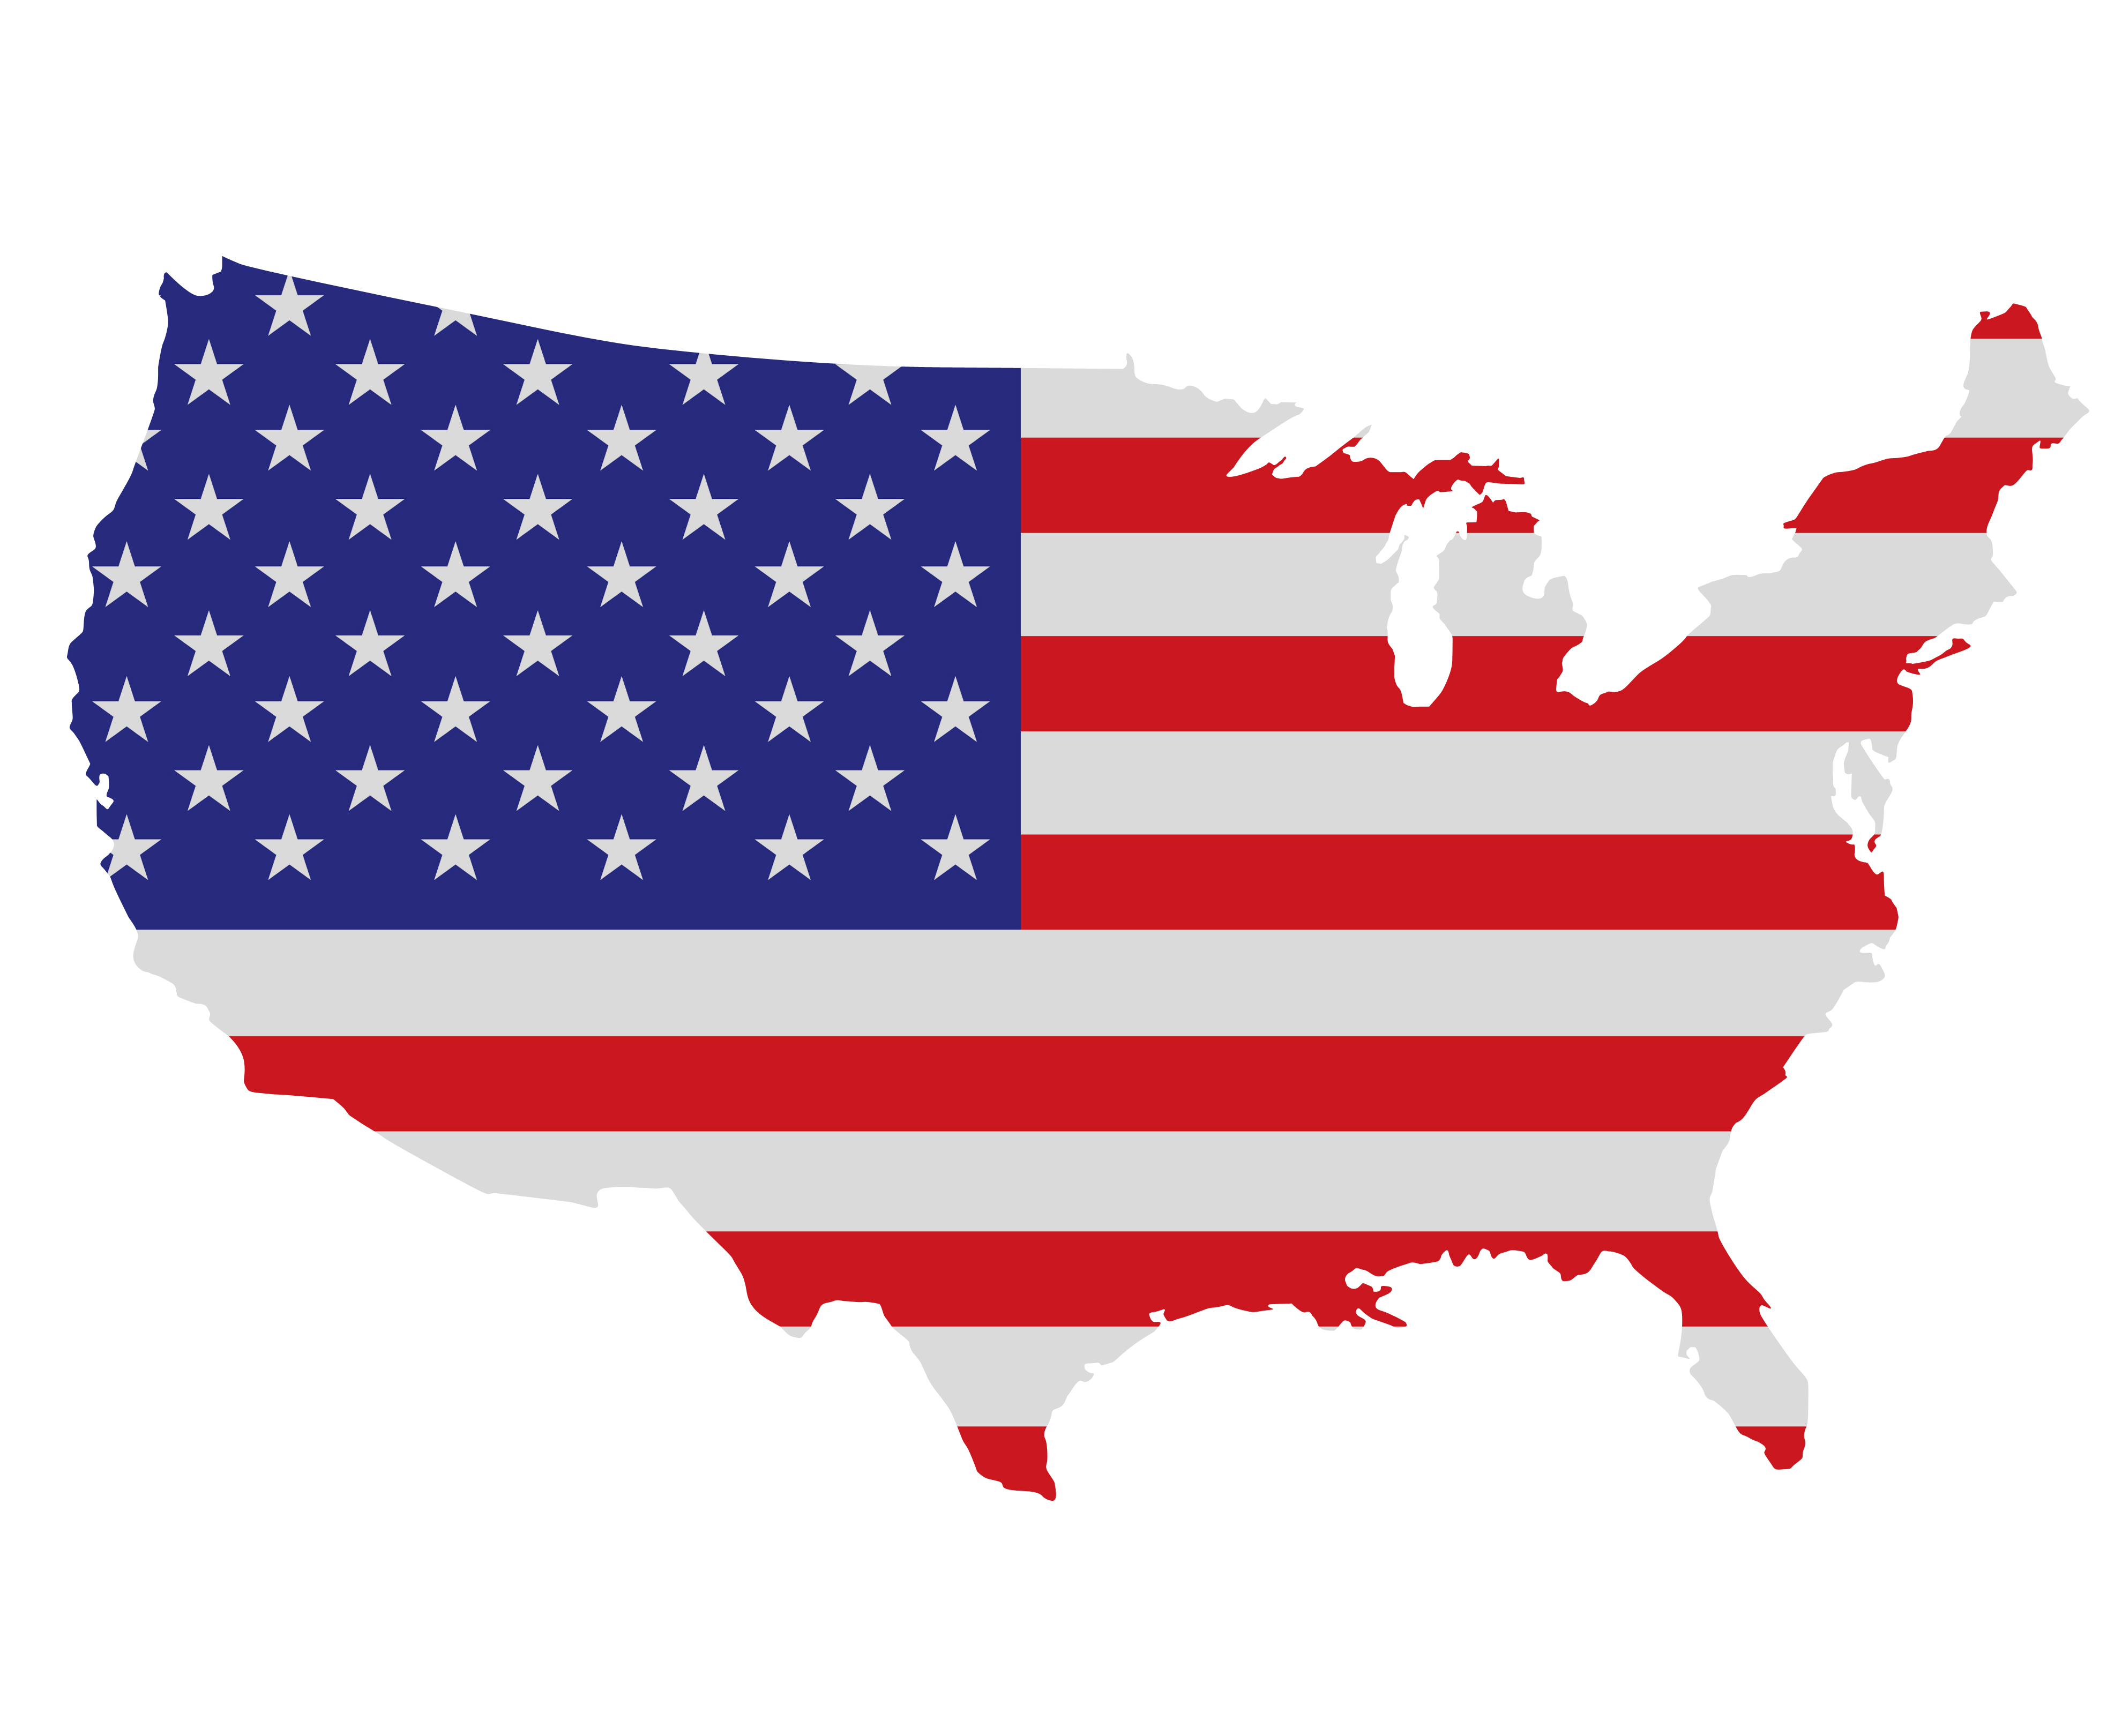 United States Of America Clipart Clipground - Clipart map of us states